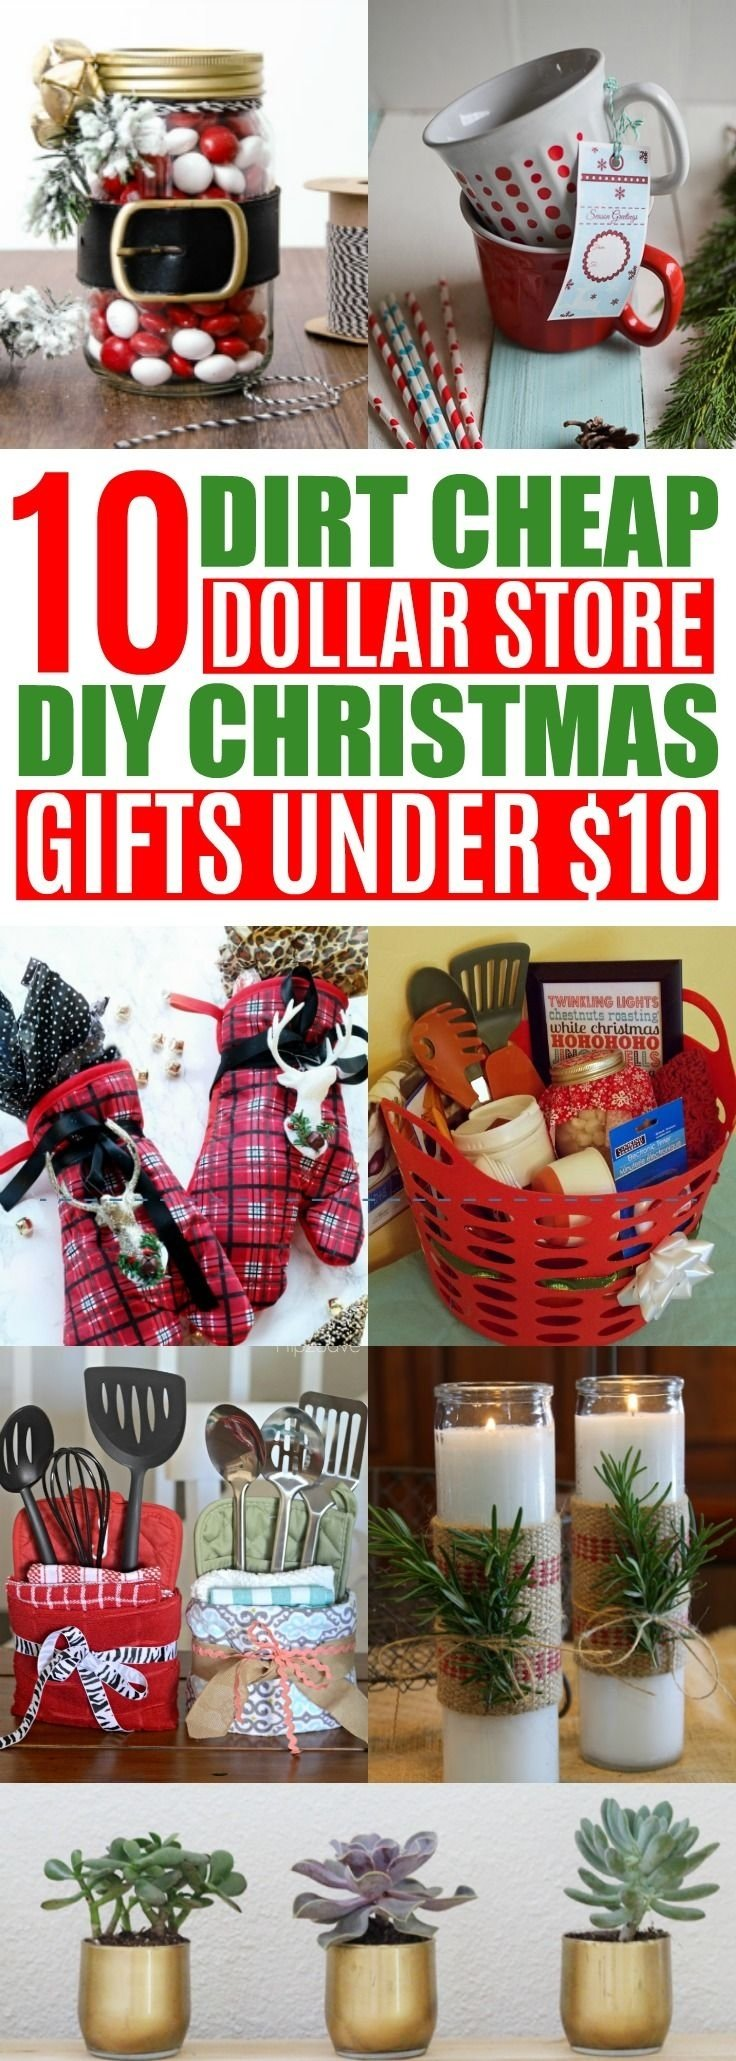 10 Stylish Christmas Gift Ideas On A Budget 10 diy cheap christmas gift ideas from the dollar store under 10 1